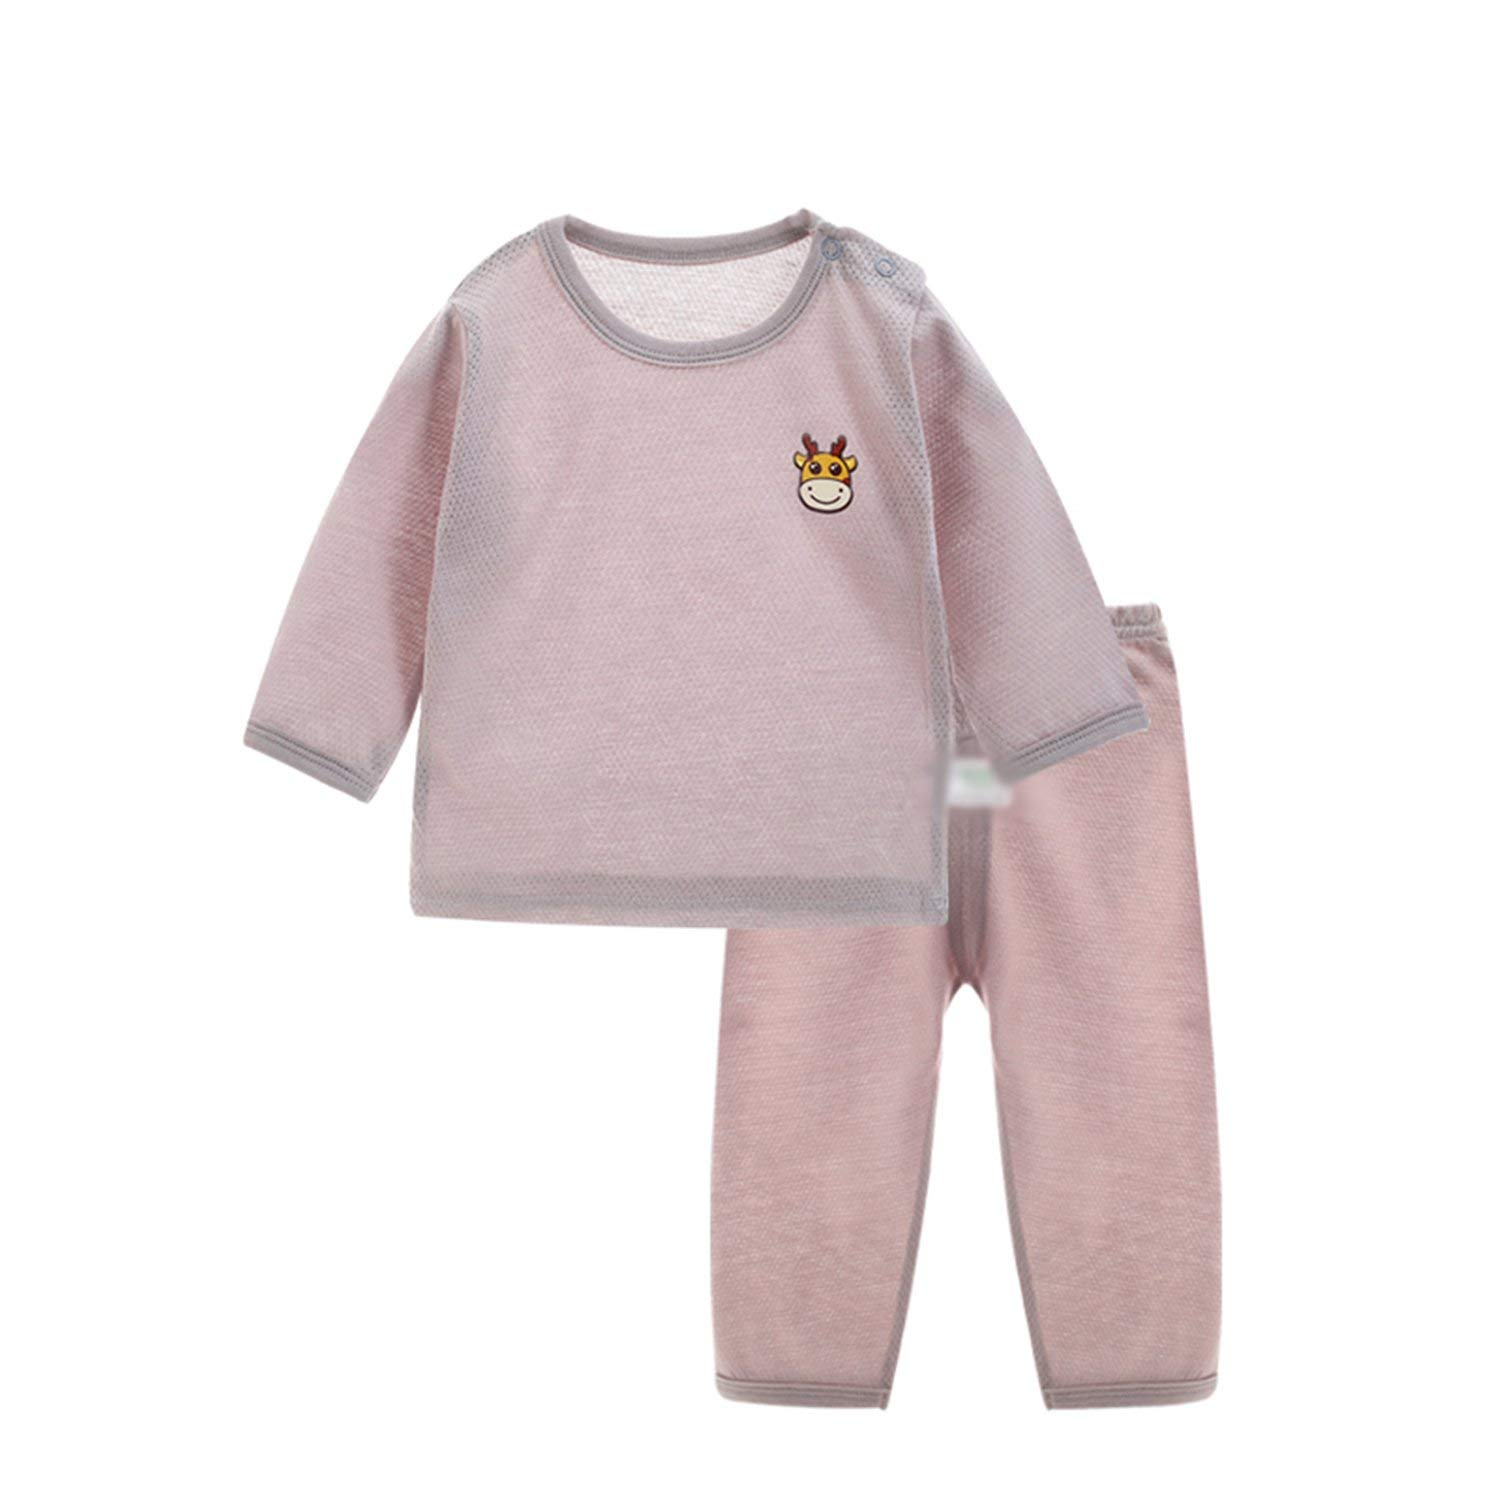 f27b460a11 Get Quotations · Kateirmaso Children s Pajamas 2pcs Set Baby Boys Pajamas  Set Autumn Clothes Sets Sleepwear Sets Girl